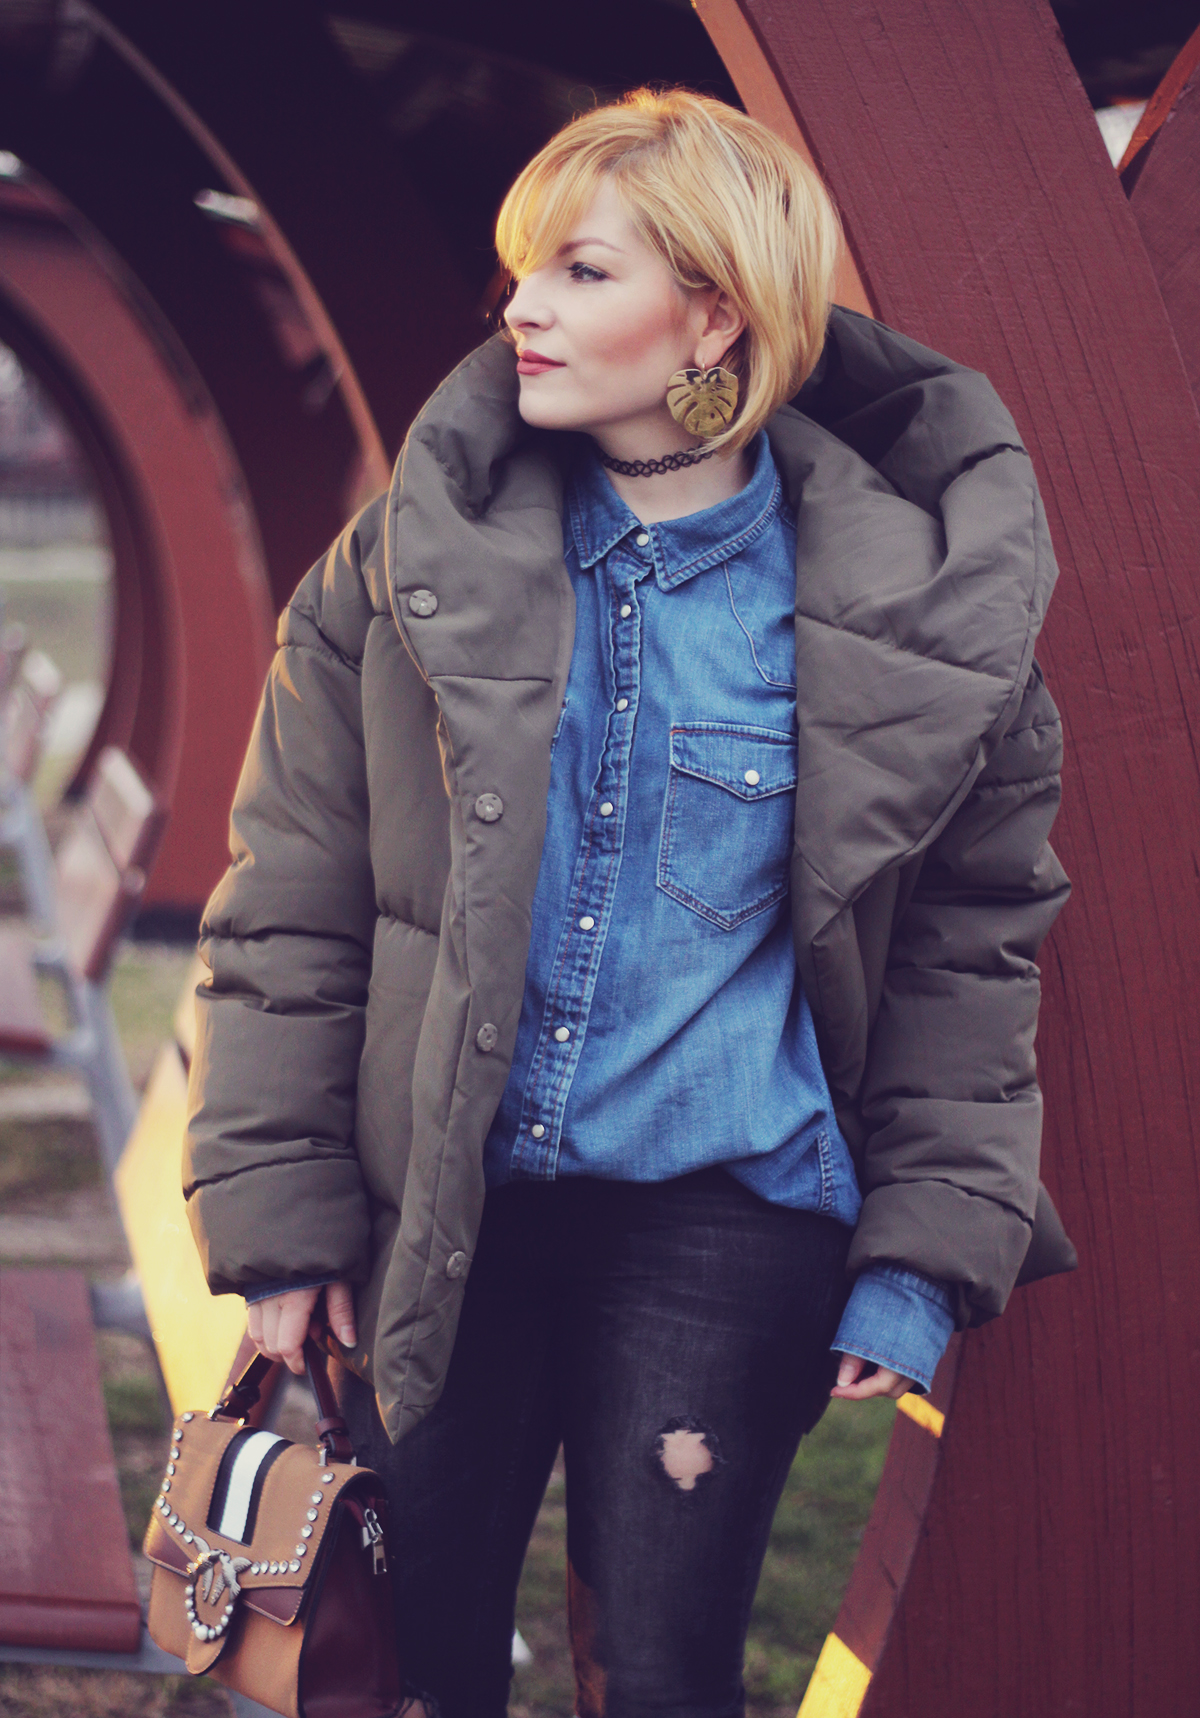 winter fashion, padded jacket, brown bag with bird detail, jeans, matte make-up, leaf earrings, choker